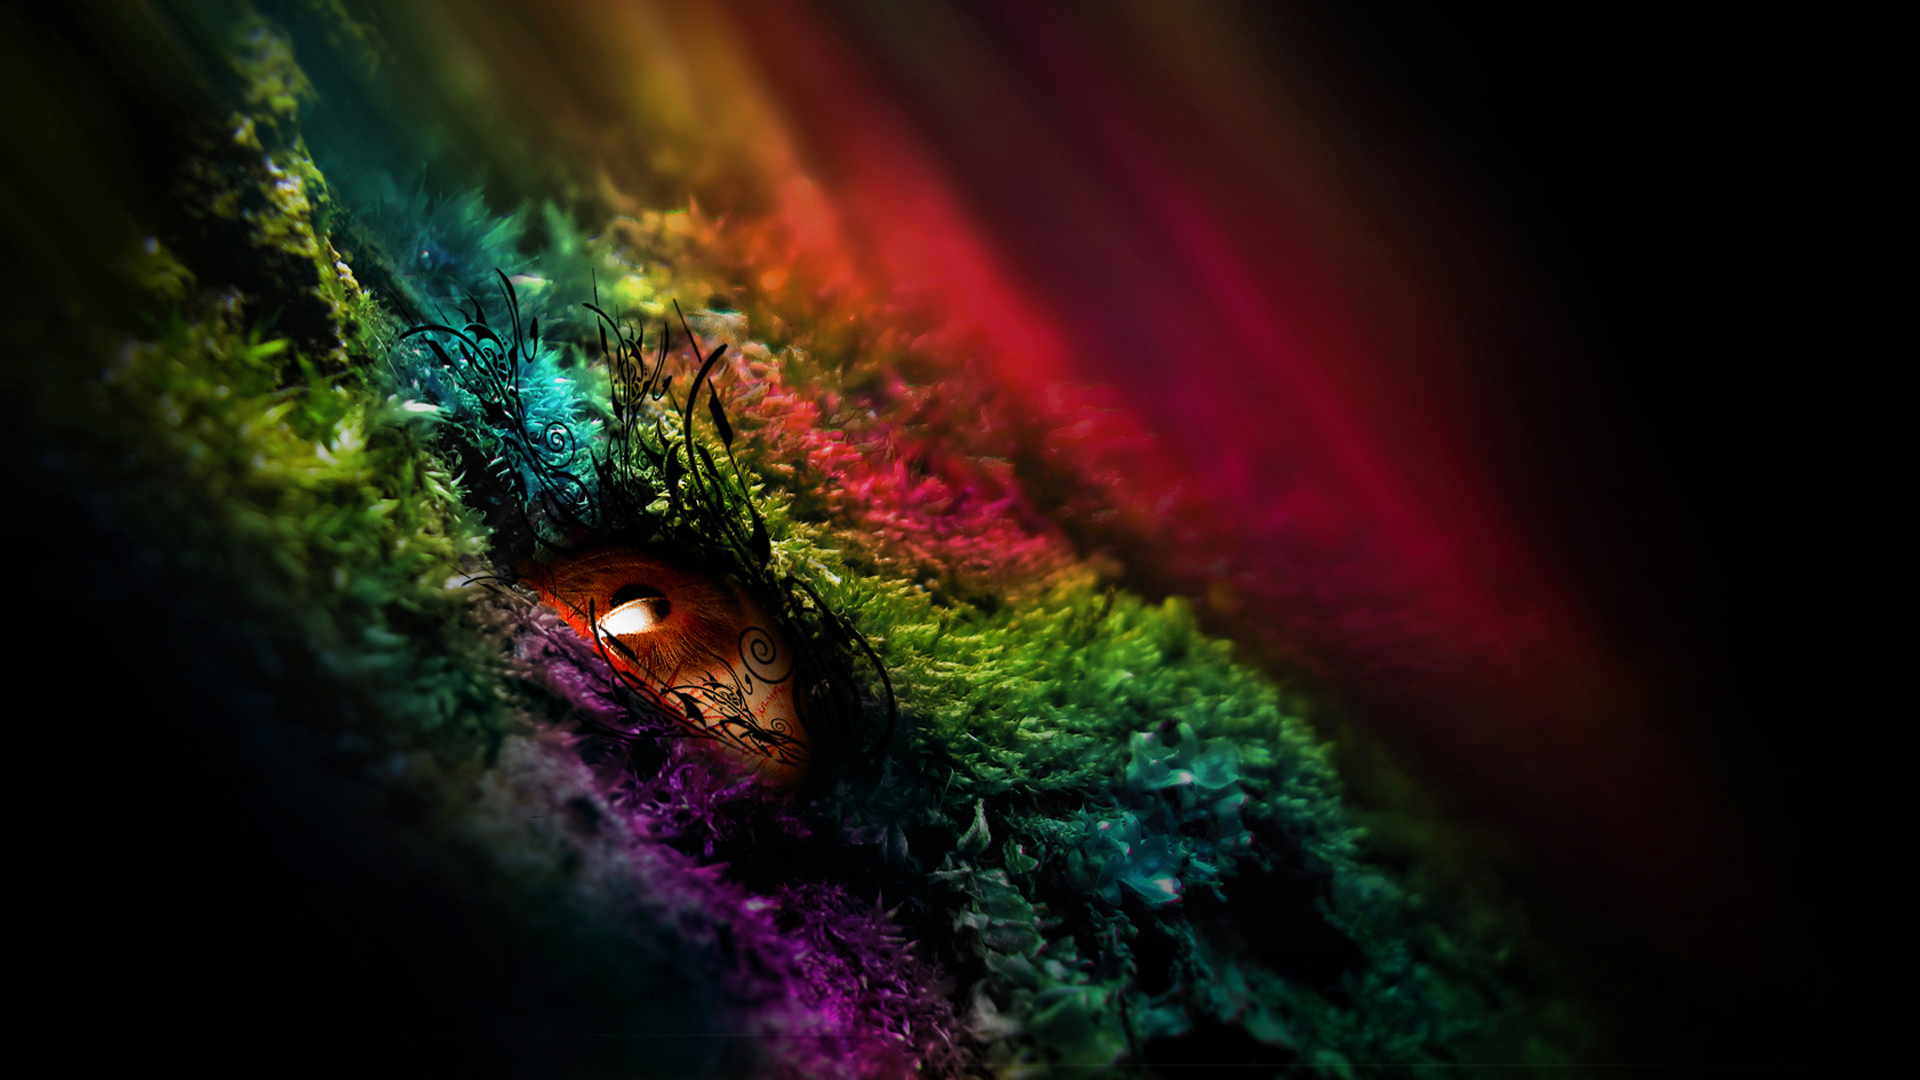 download wallpaper 1920x1080 colorful - photo #49